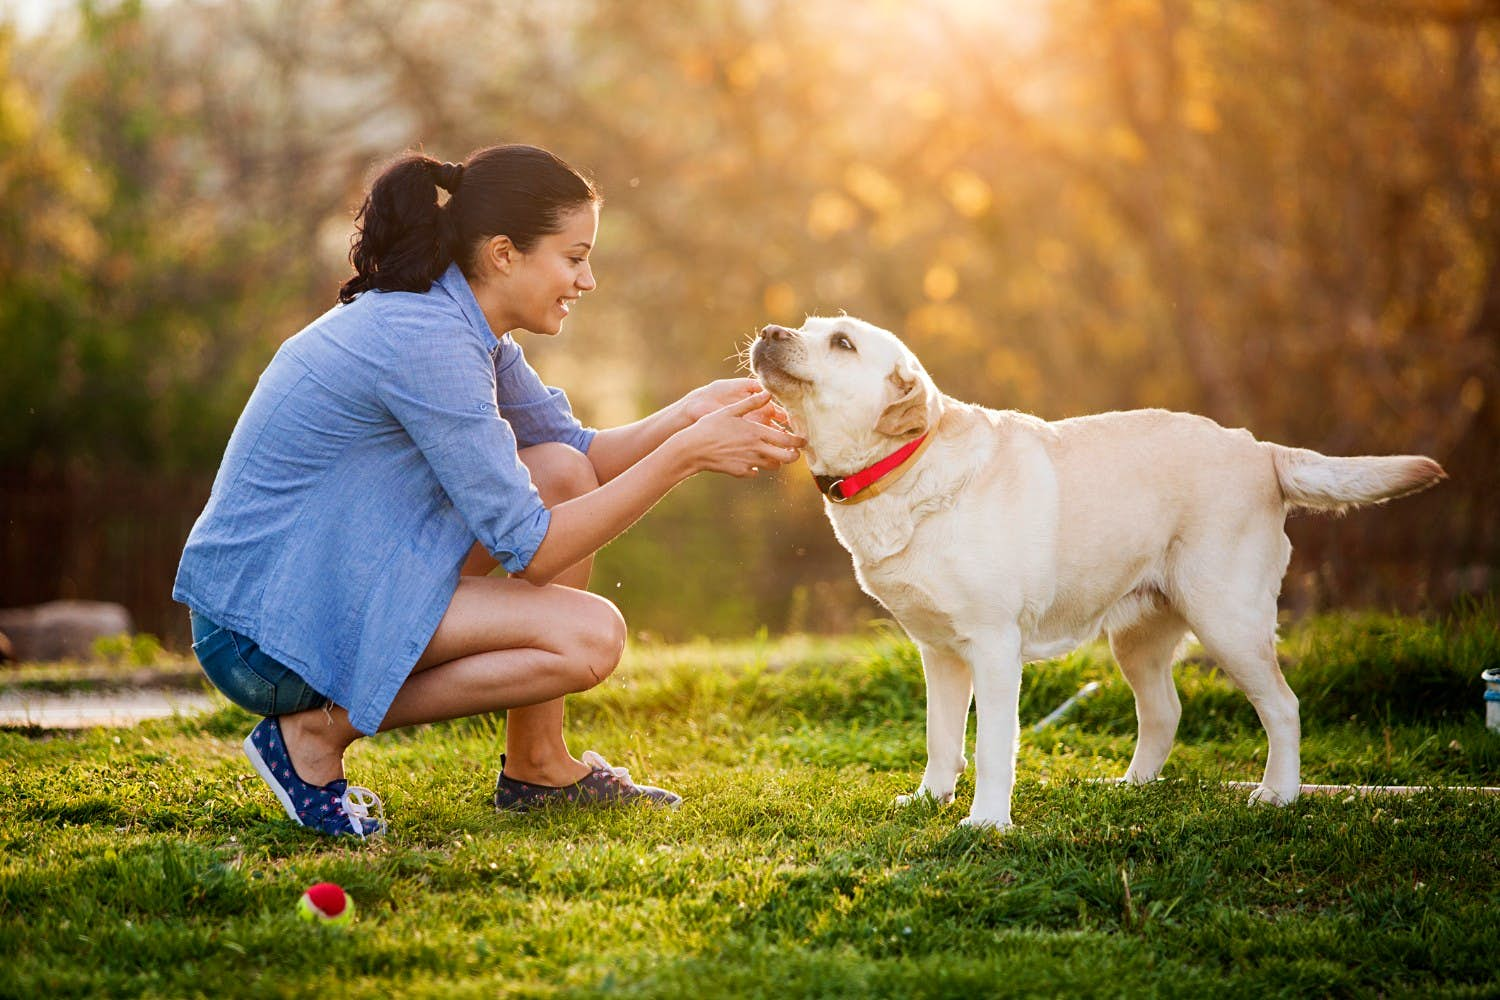 A woman petting a white dog